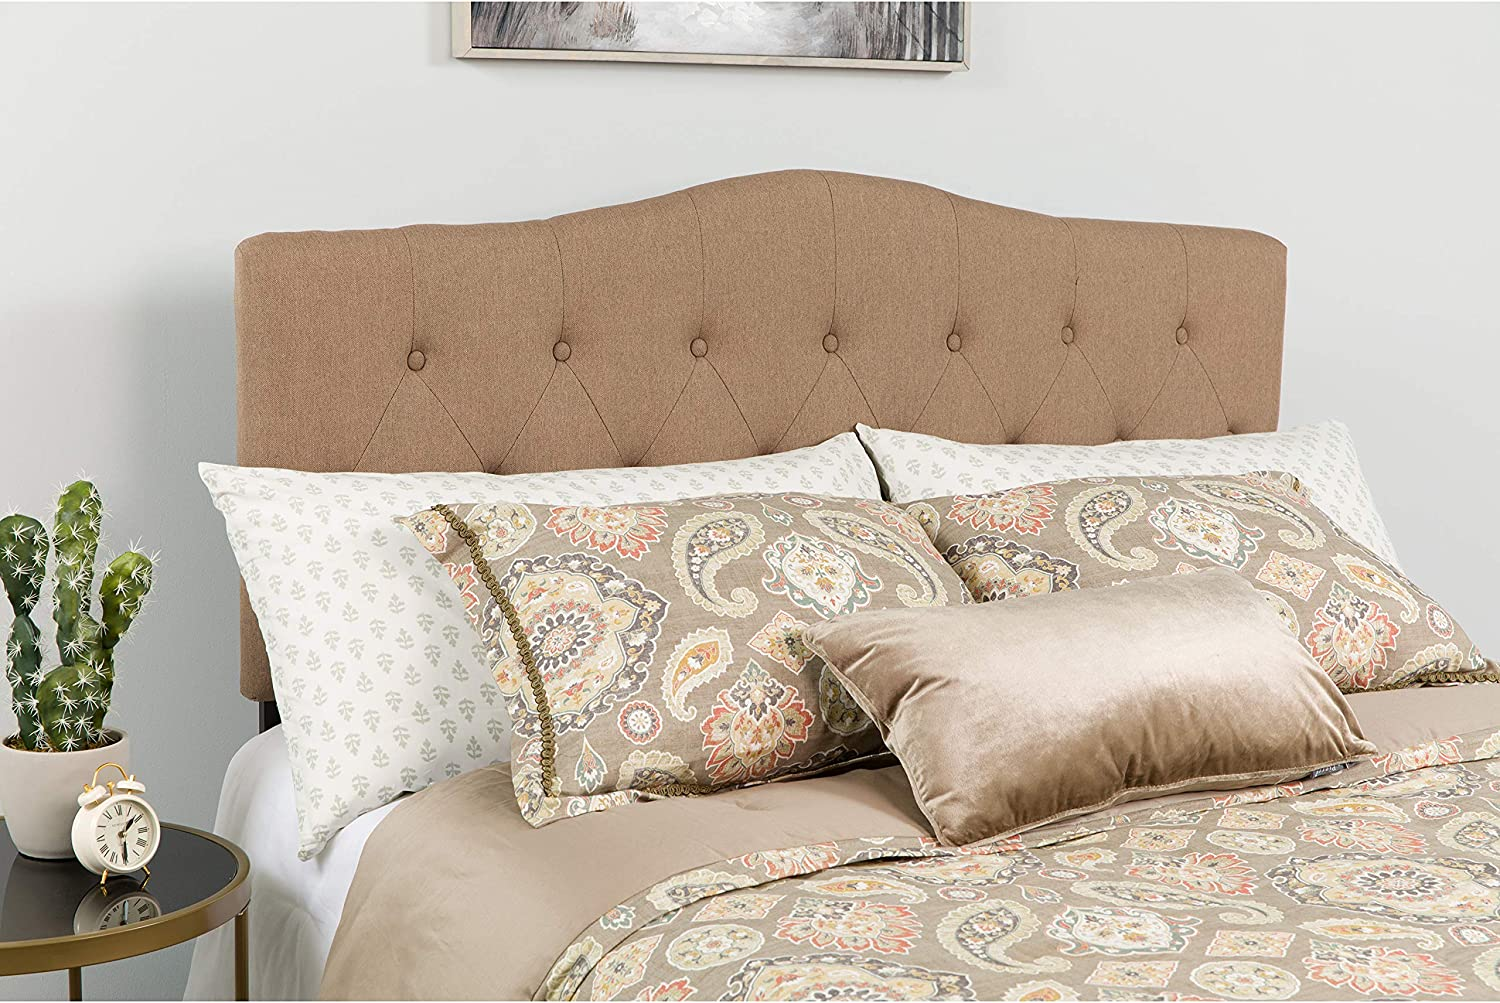 Flash Furniture Cambridge Tufted Upholstered Full Size Headboard in Camel Fabric